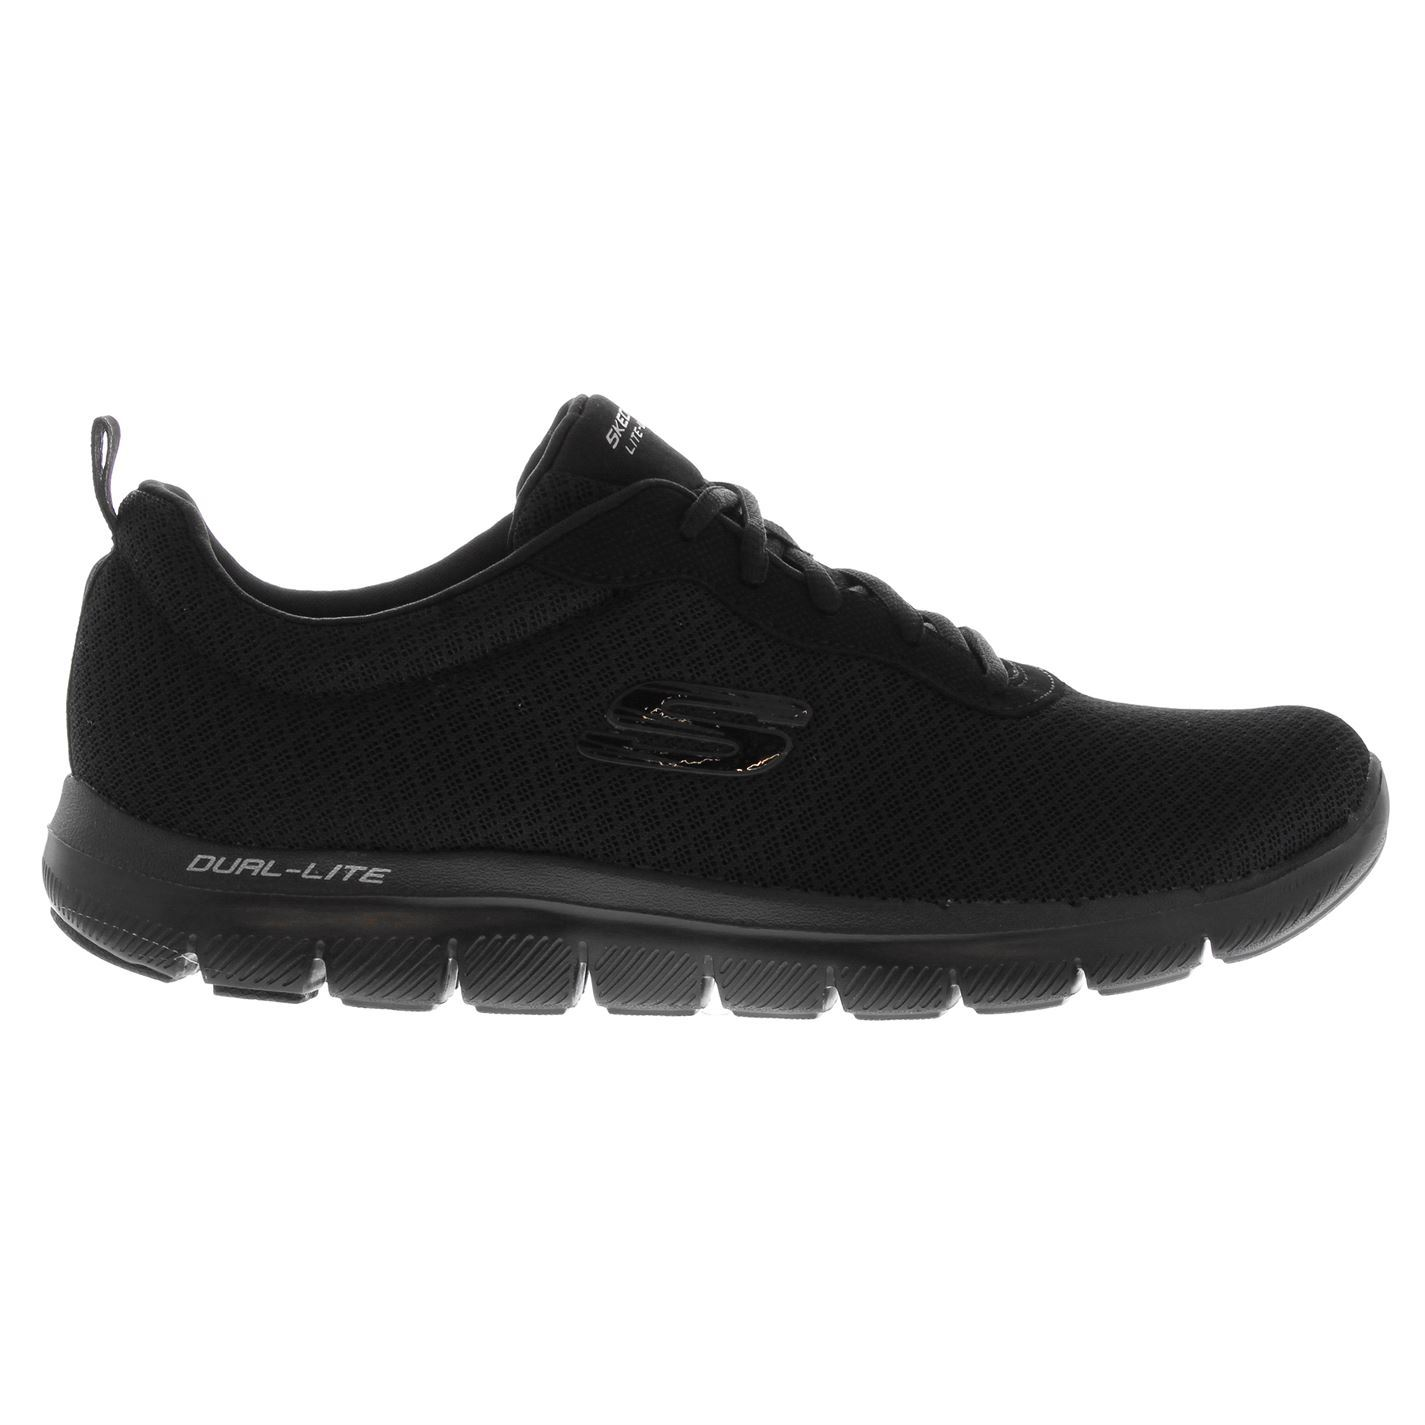 official supplier classic style super quality Skechers Flex Appeal 2.0 newsmaster Femmes Baskets Chaussures ...